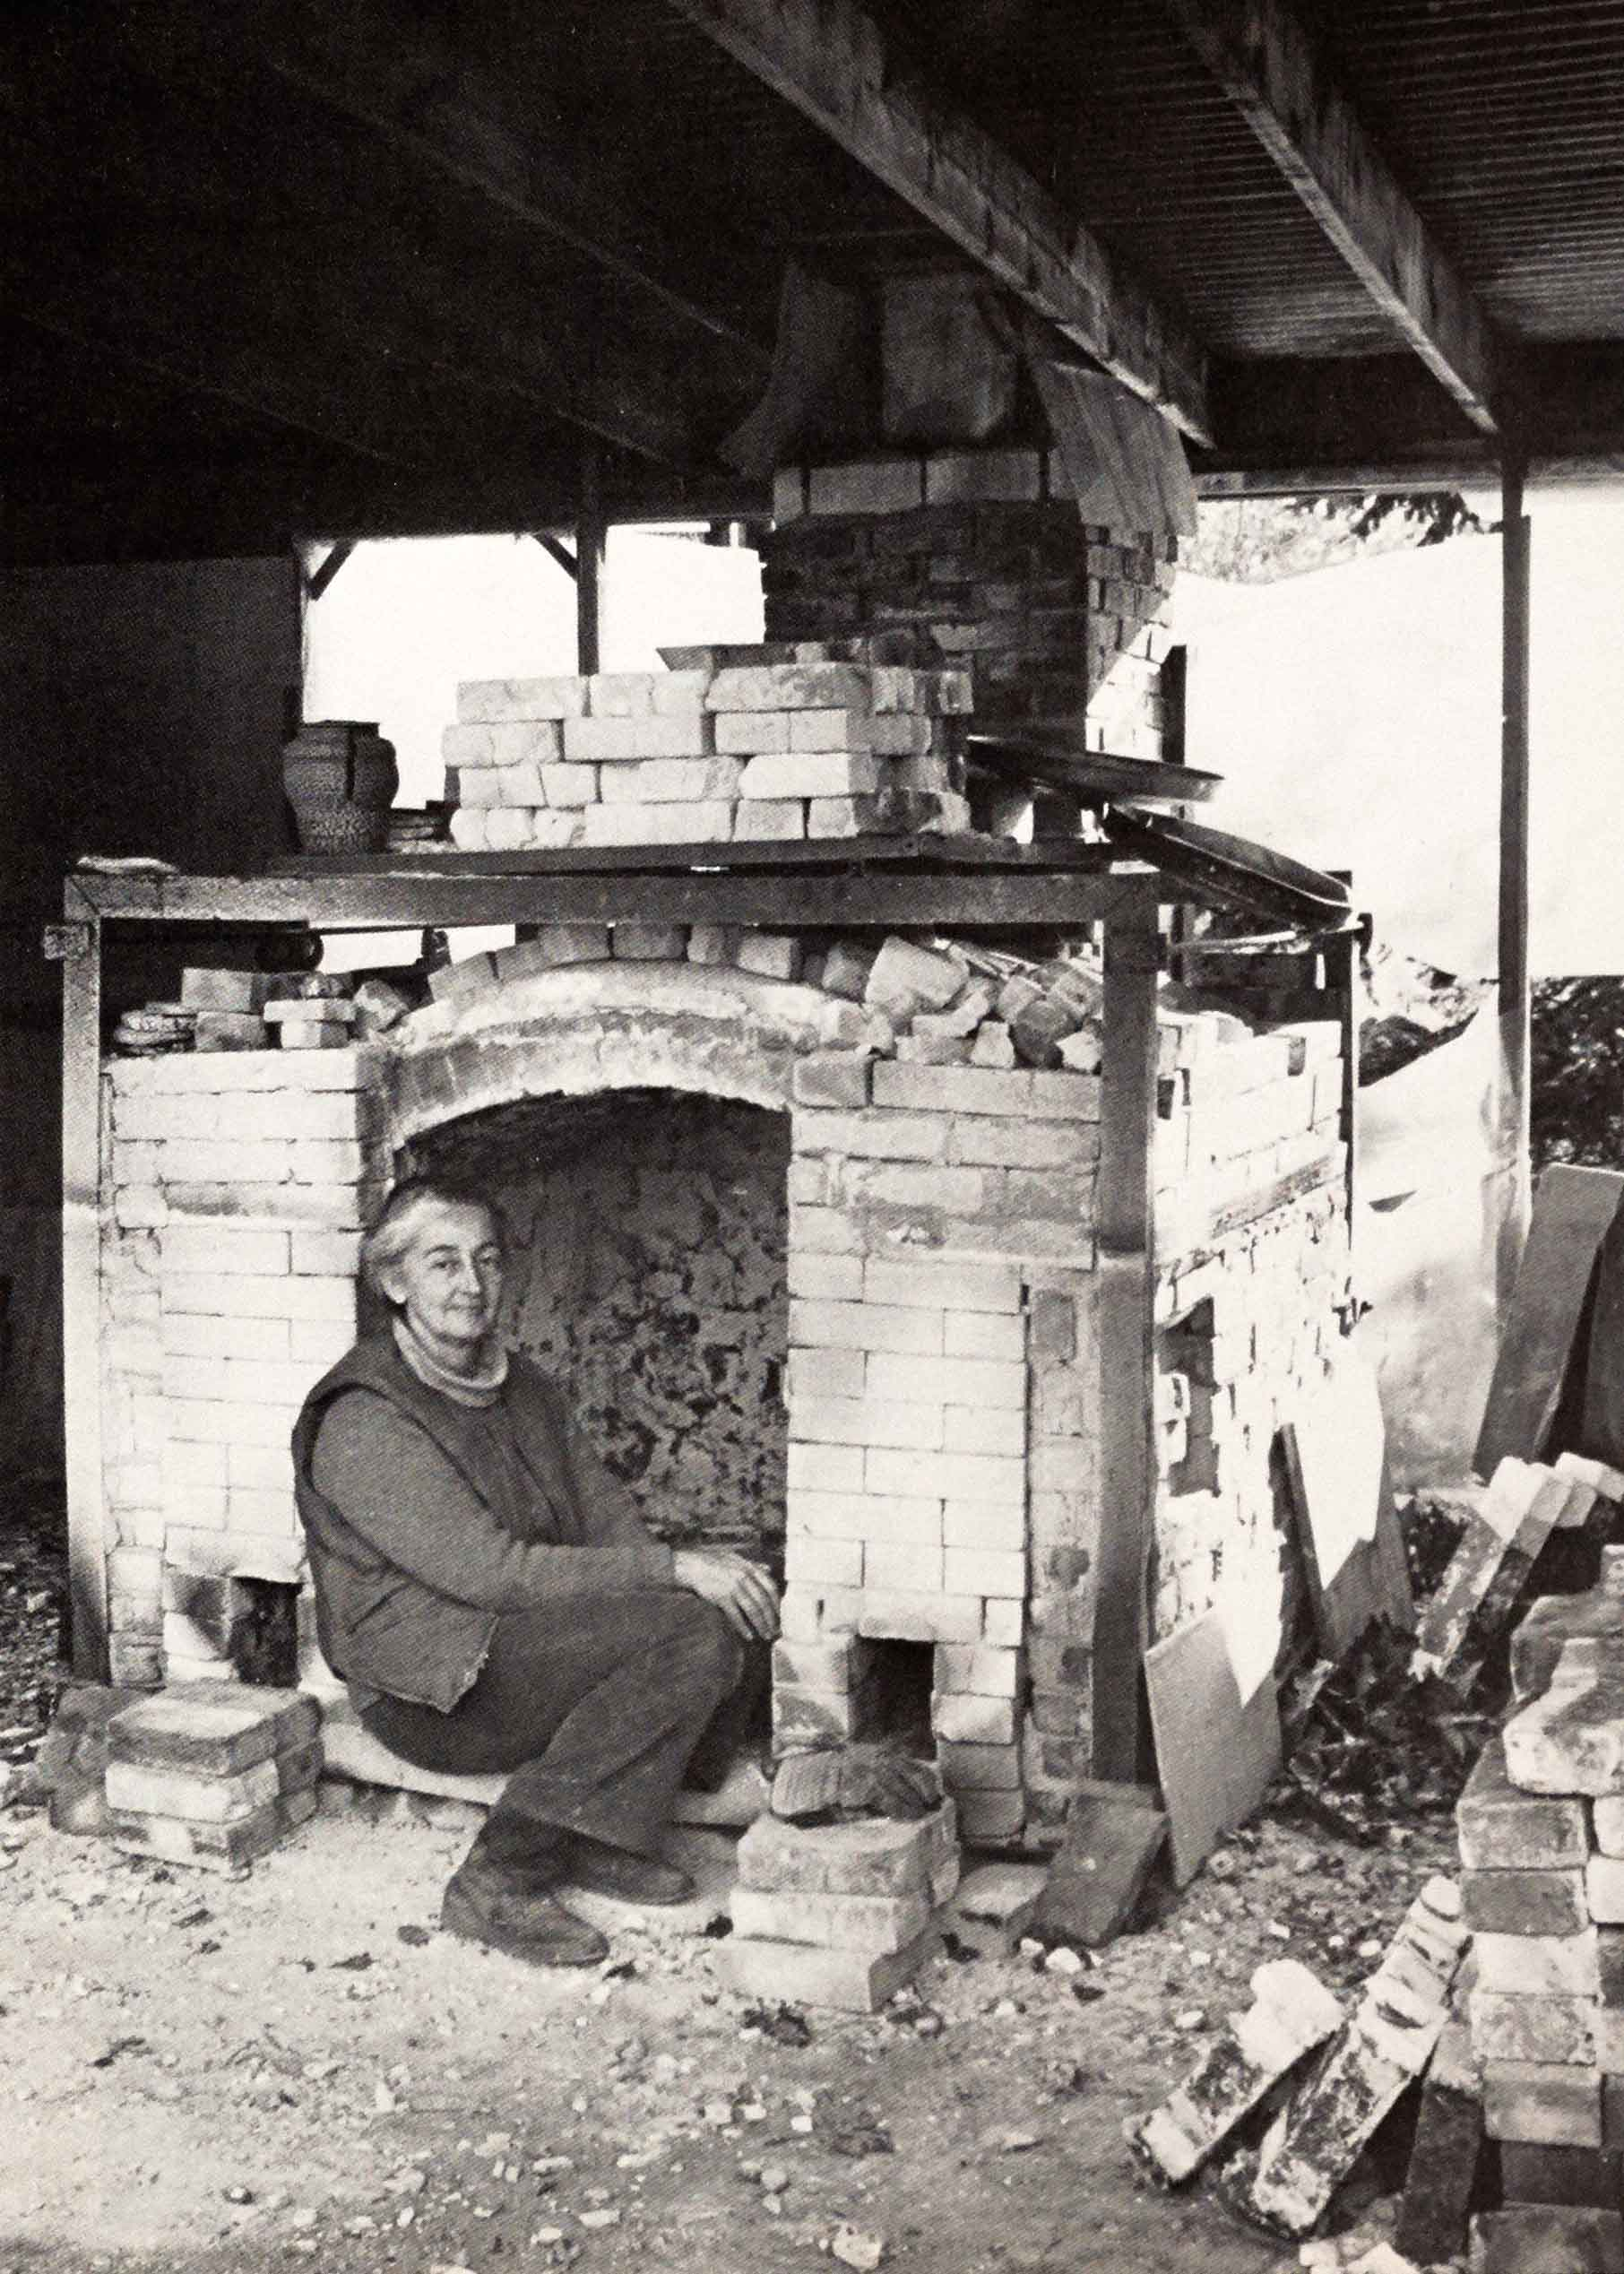 Karen Karnes in front of her salt kiln, 1976. From SP Vol. 5, No. 2.